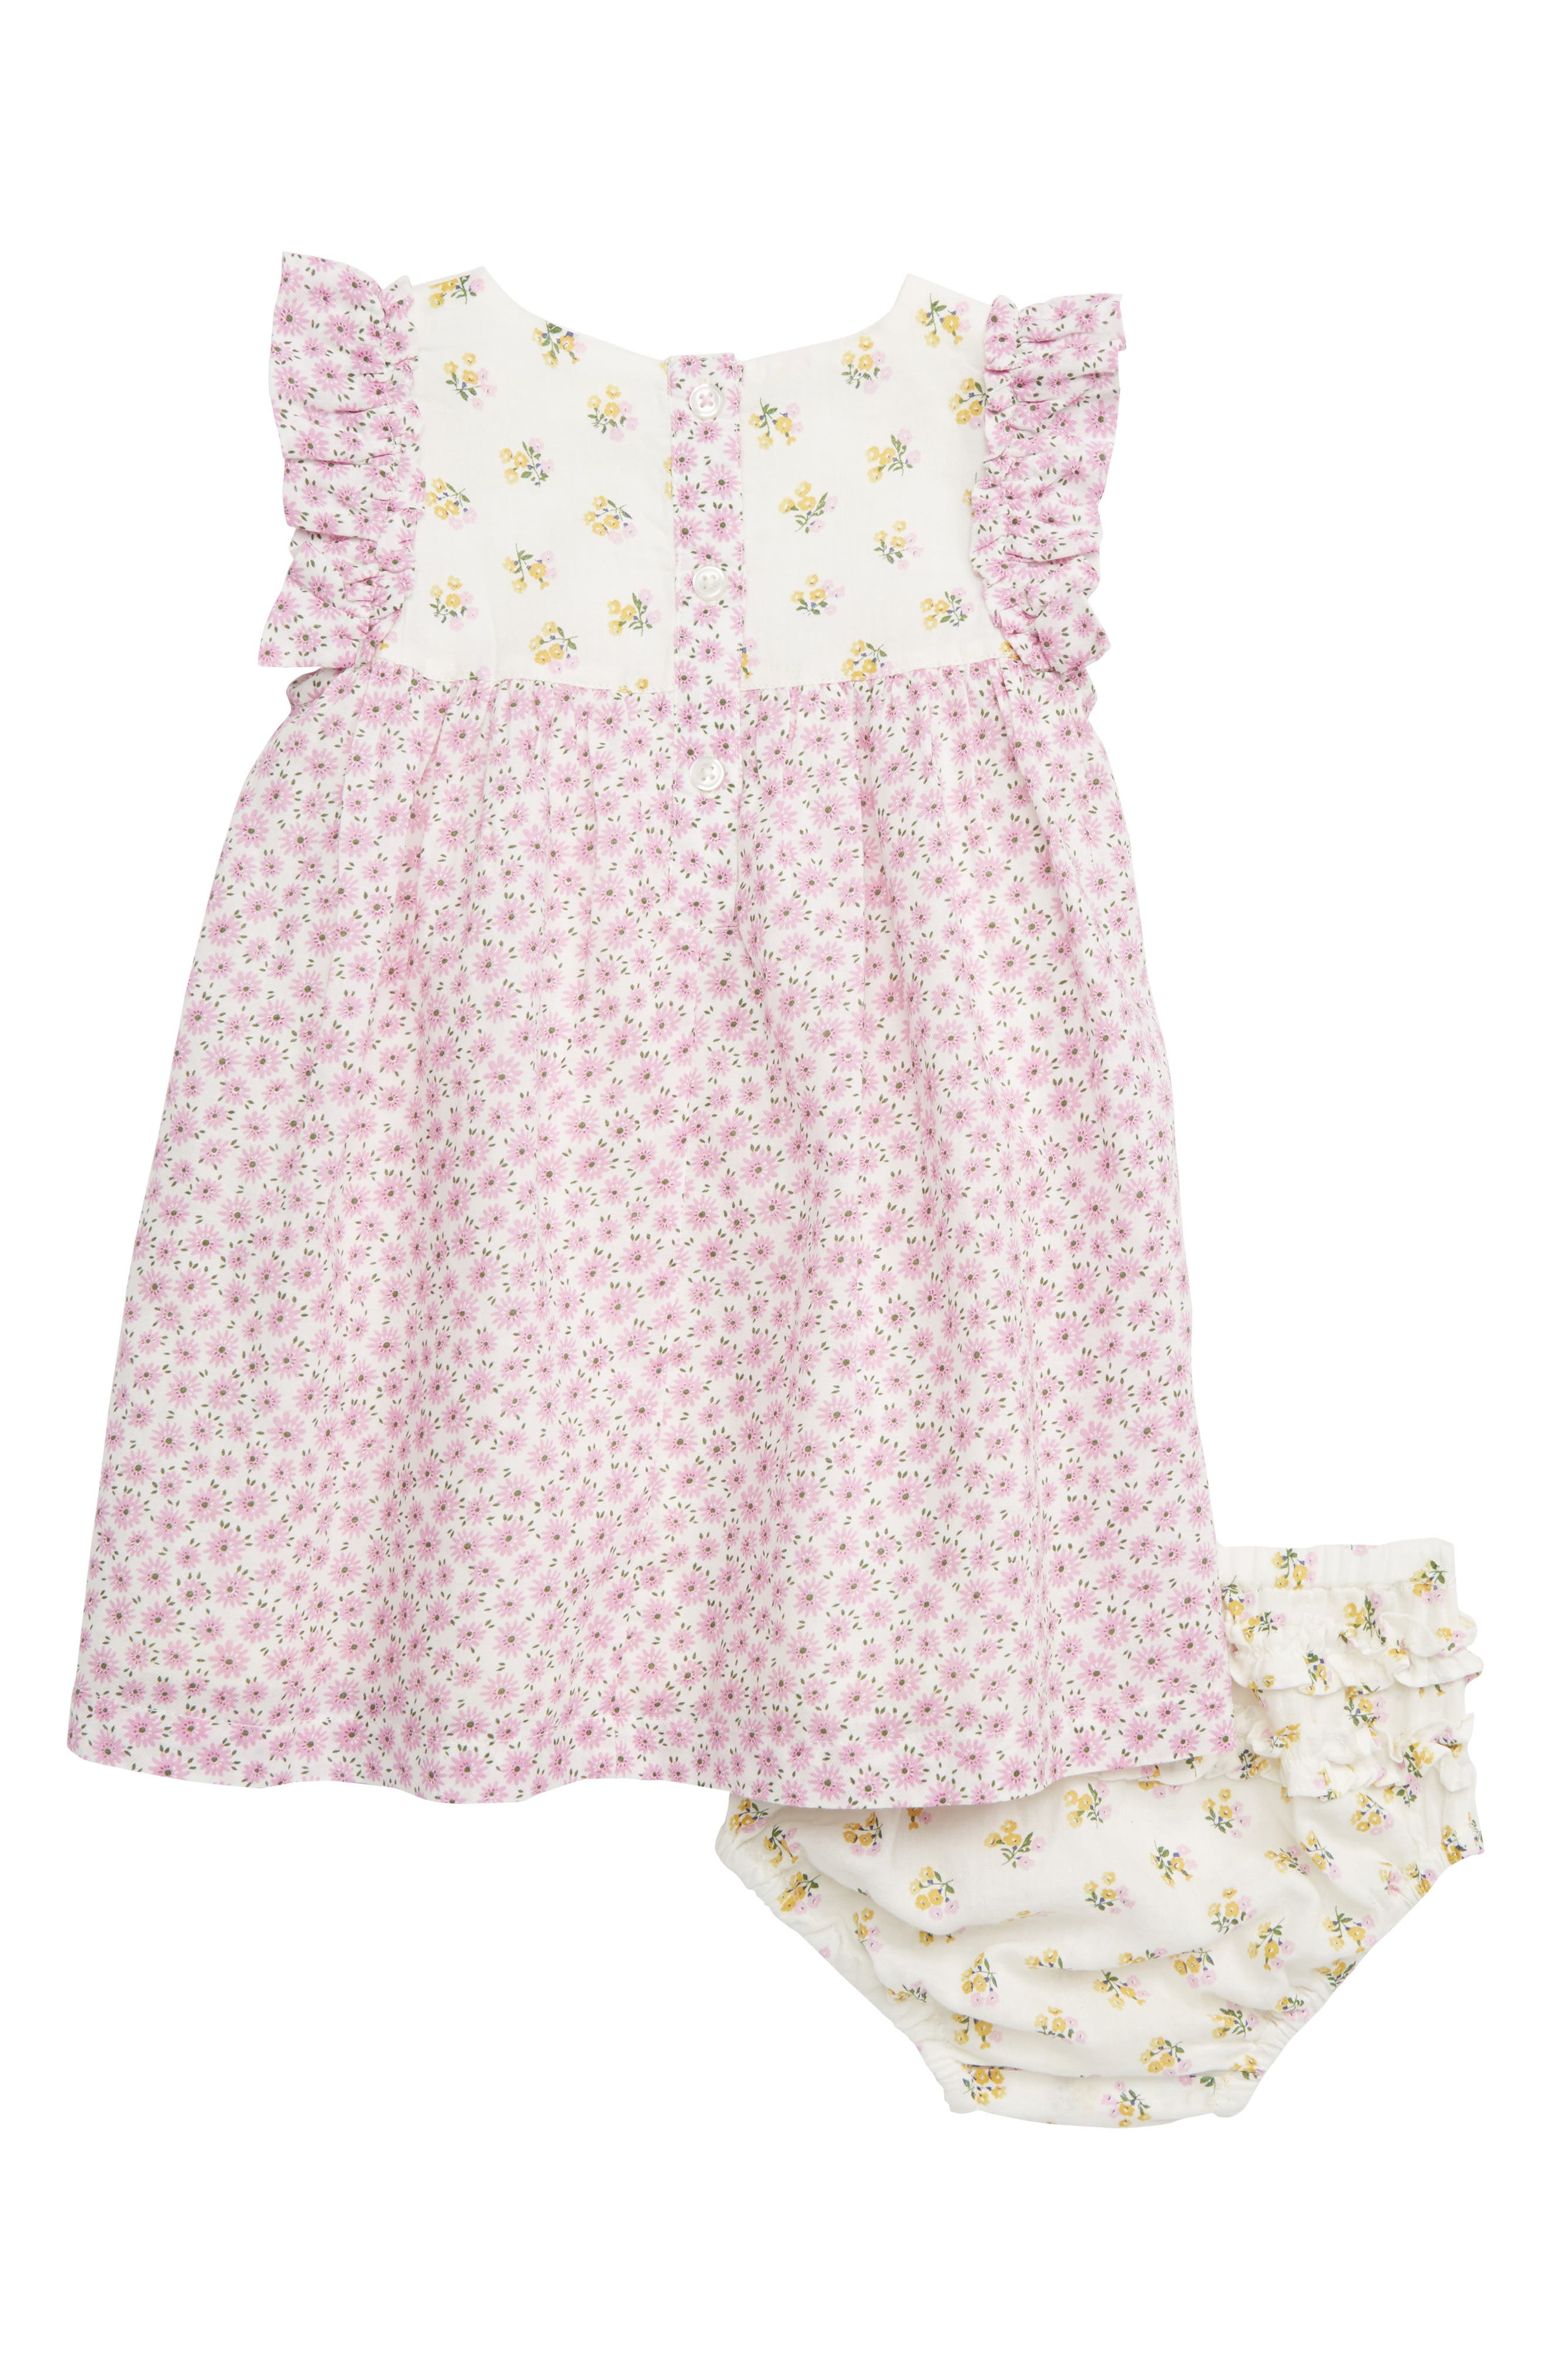 MINI BODEN, Mixed Floral Print Woven Dress, Alternate thumbnail 2, color, PRP LILAC PINK BLOSSOM